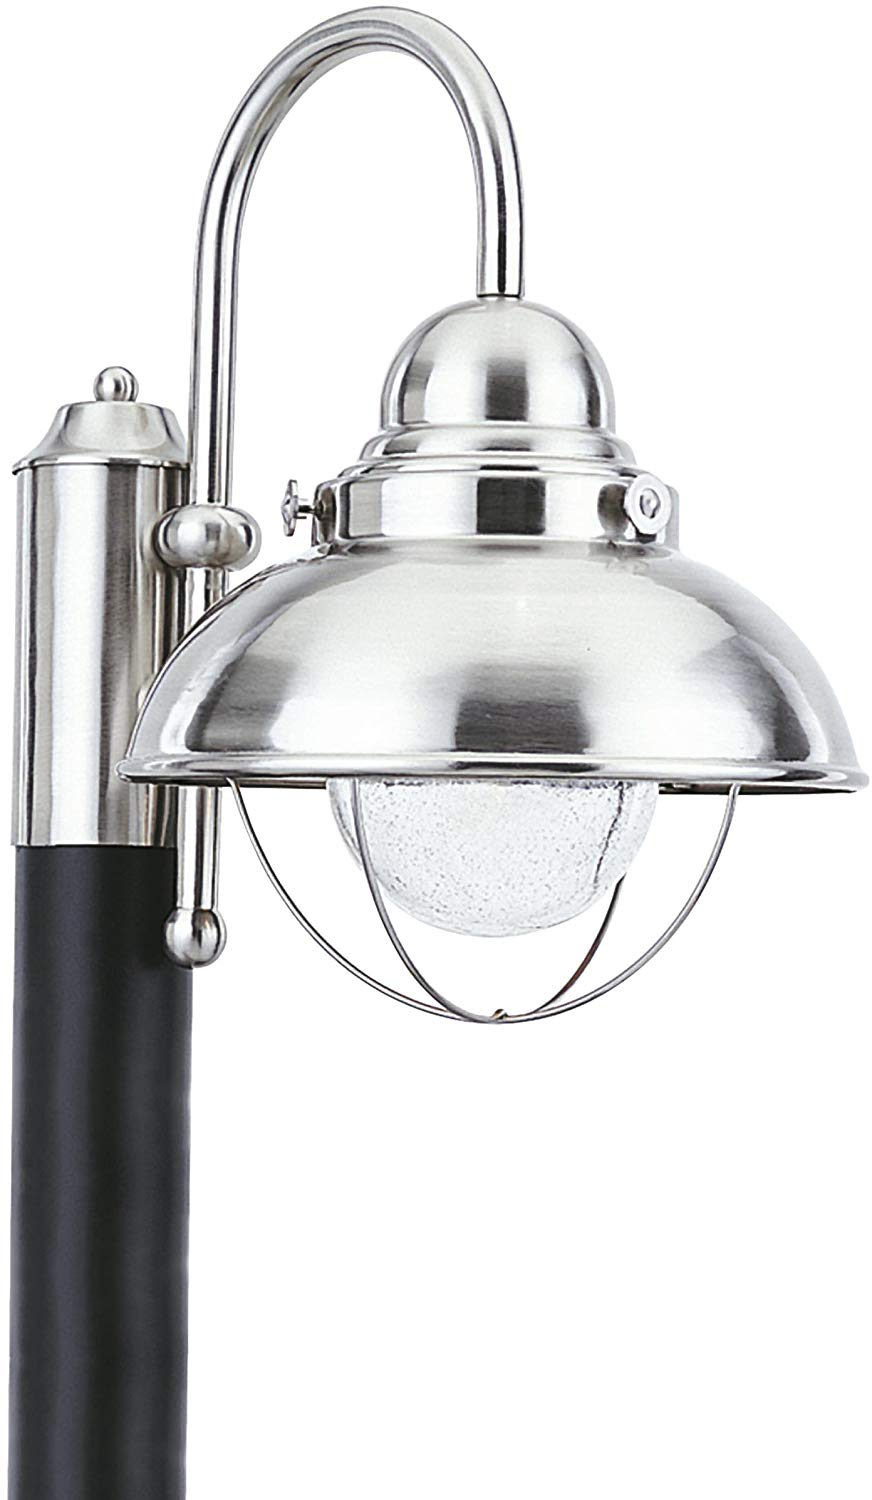 Sea Gull Lighting 826993S-98 Sebring Outdoor Post Mount, 1-Light LED 14 Watts, Brushed Stainless